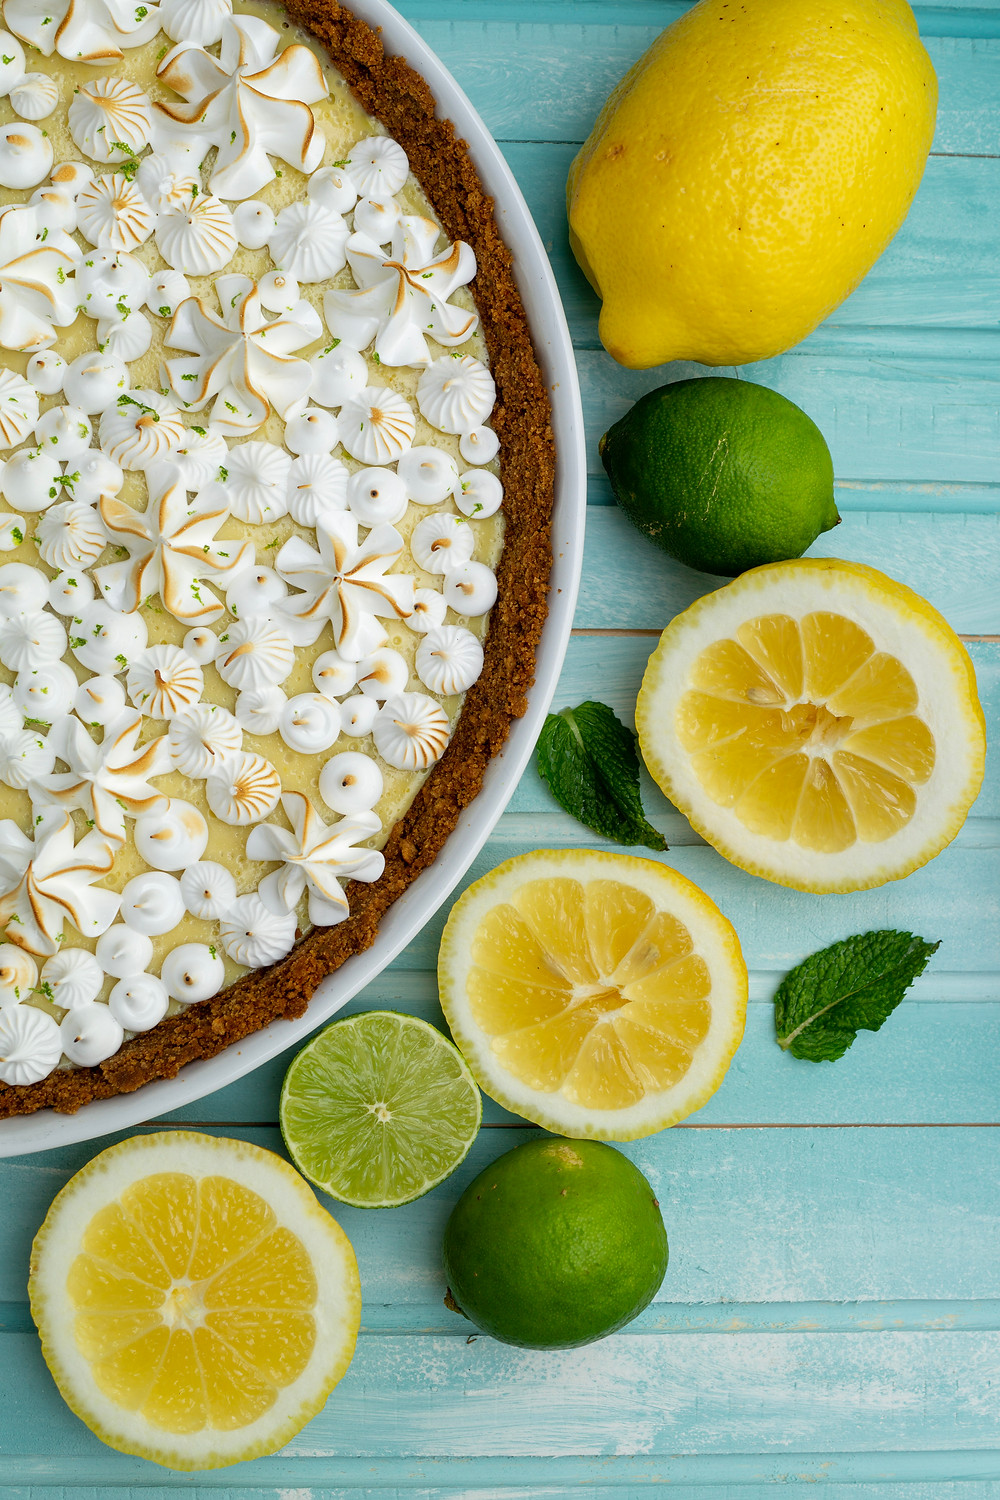 Key Lime Pie Limettenkuchen in Tarteform